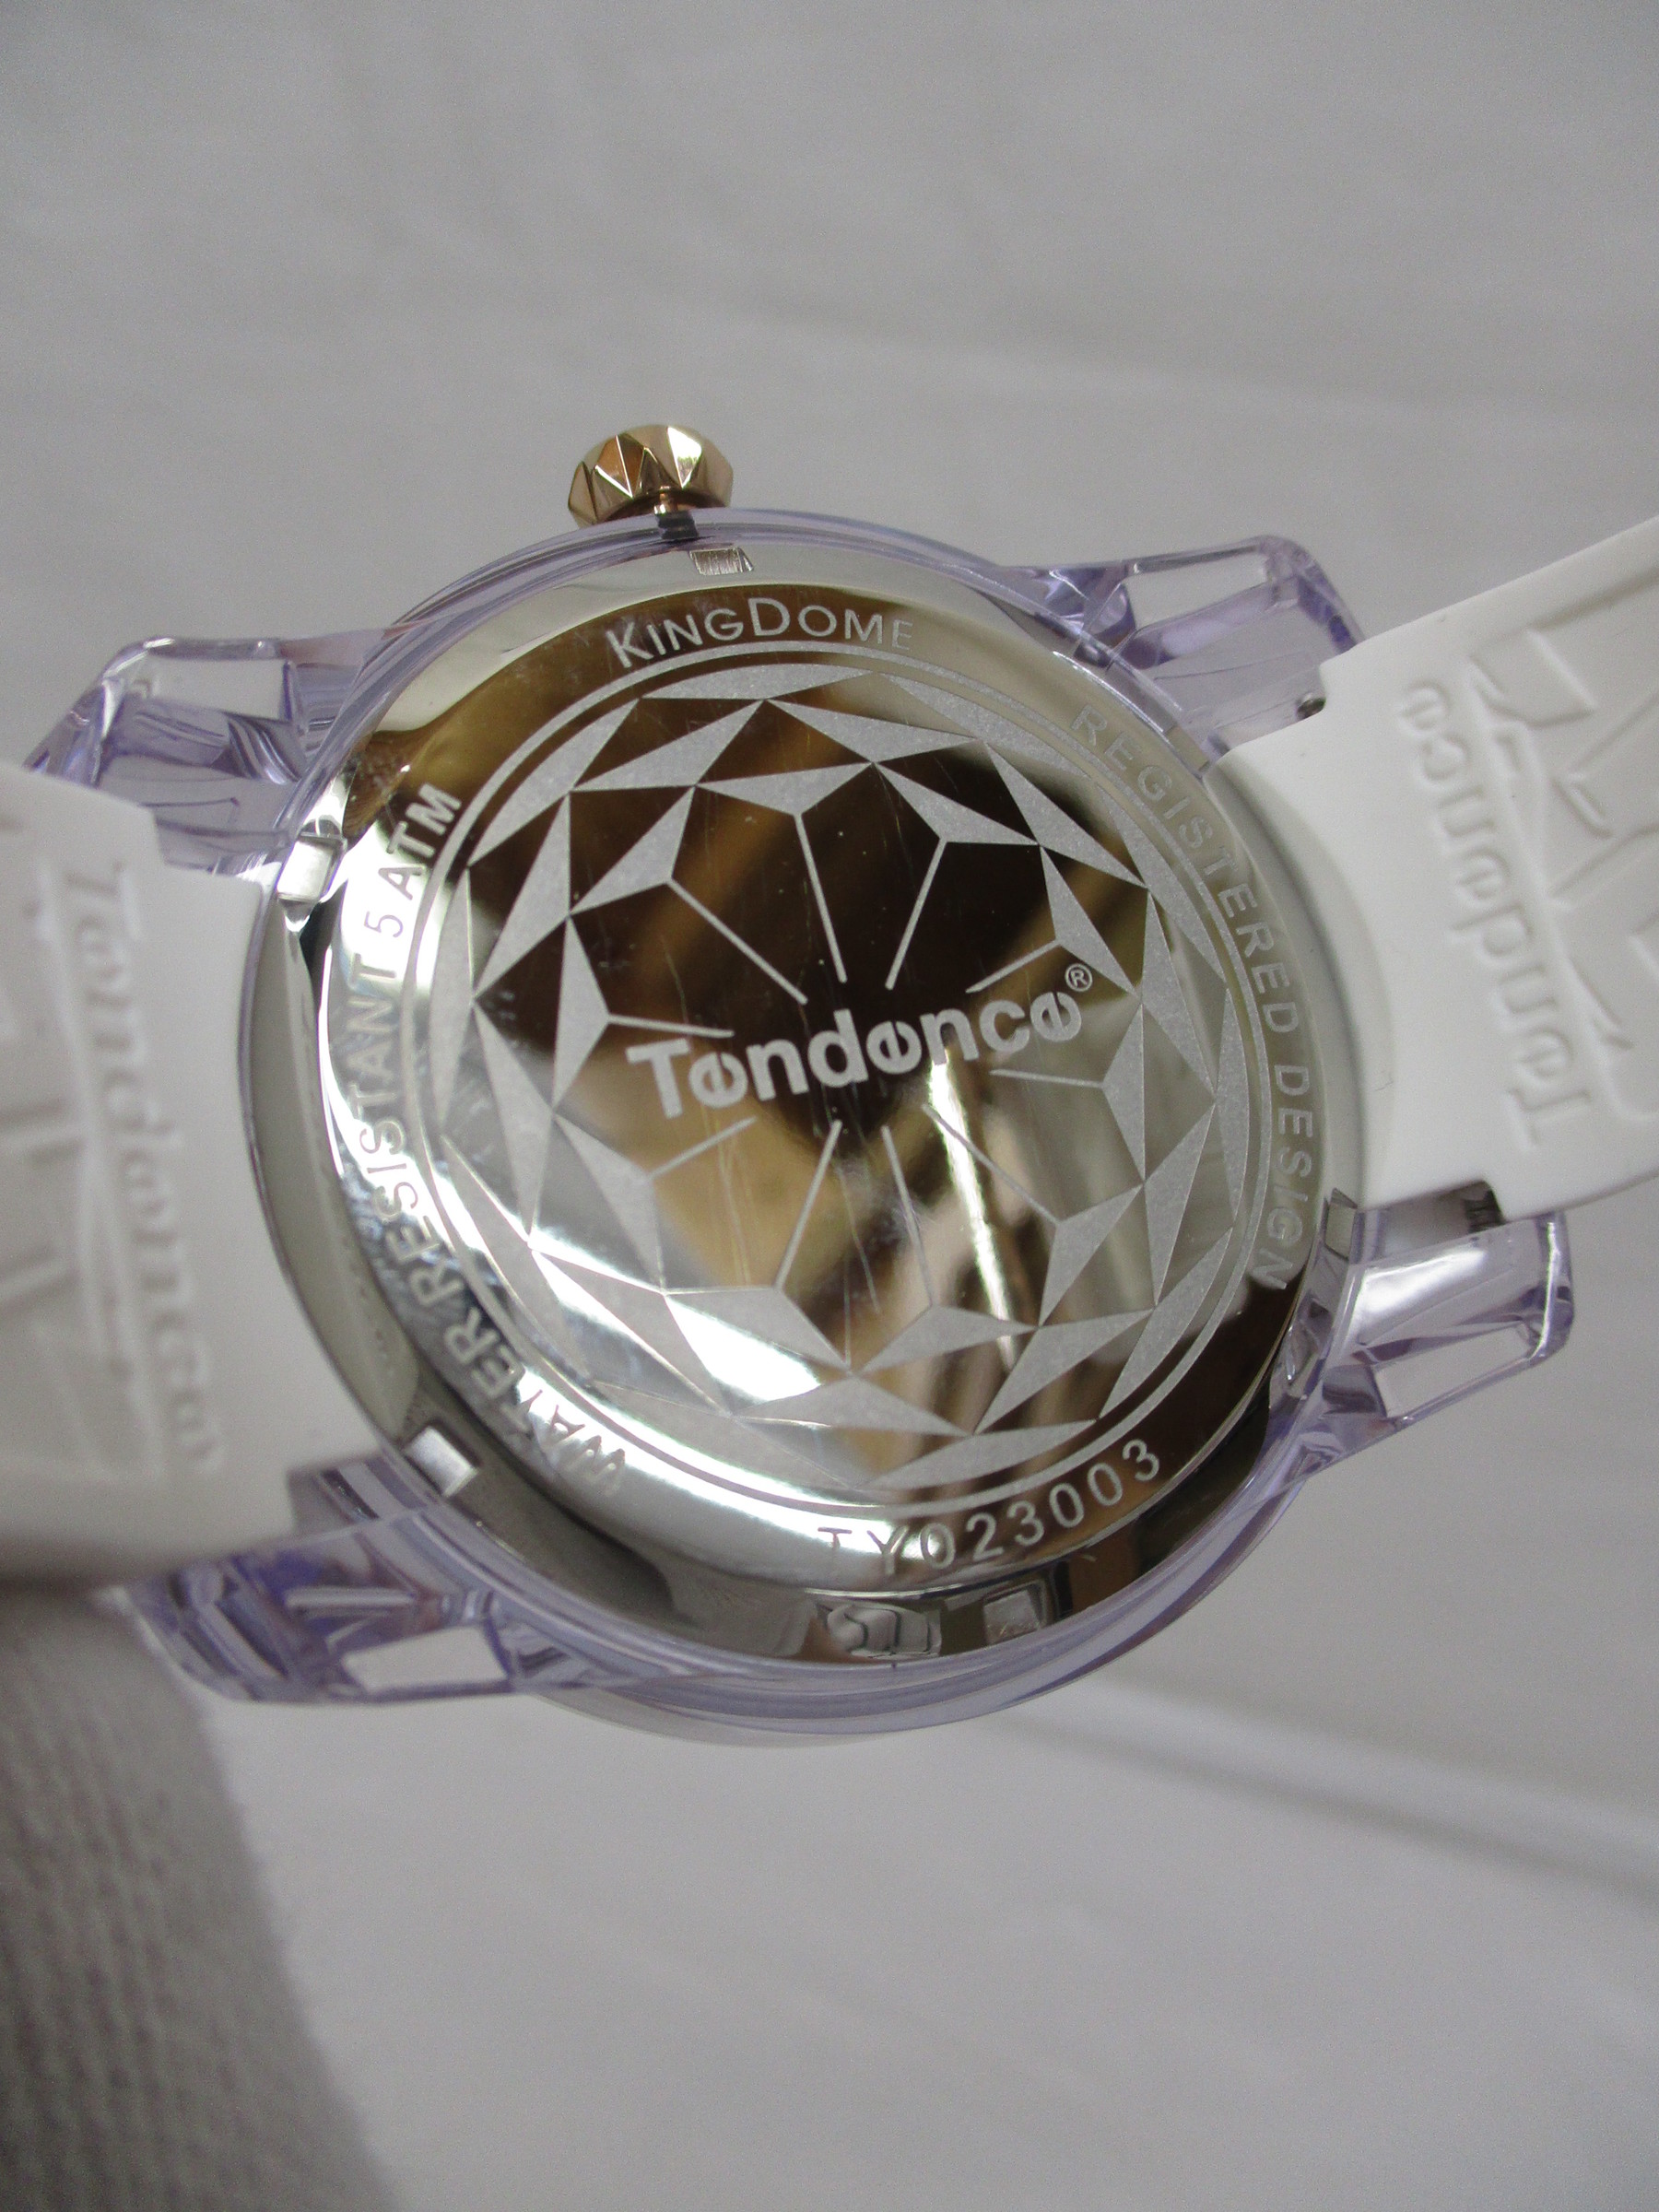 Tendence KING DOME キングドーム 腕時計 TY023003